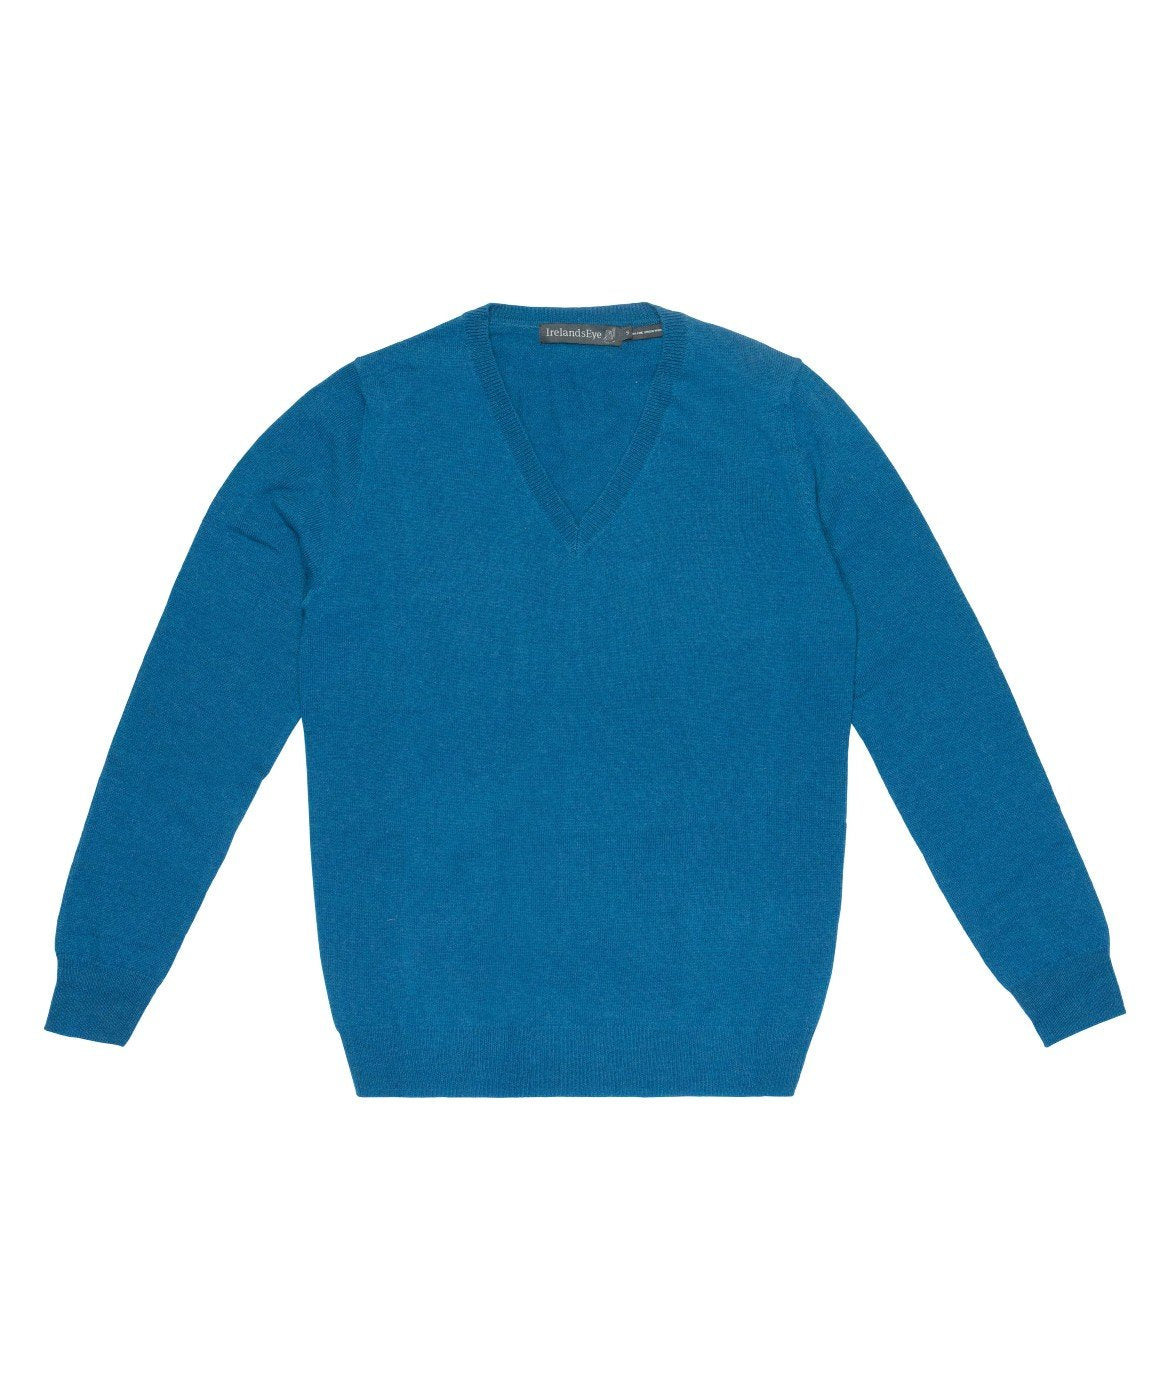 Women's Luxe Touch Wool V Neck Sweater Ocean-Teal